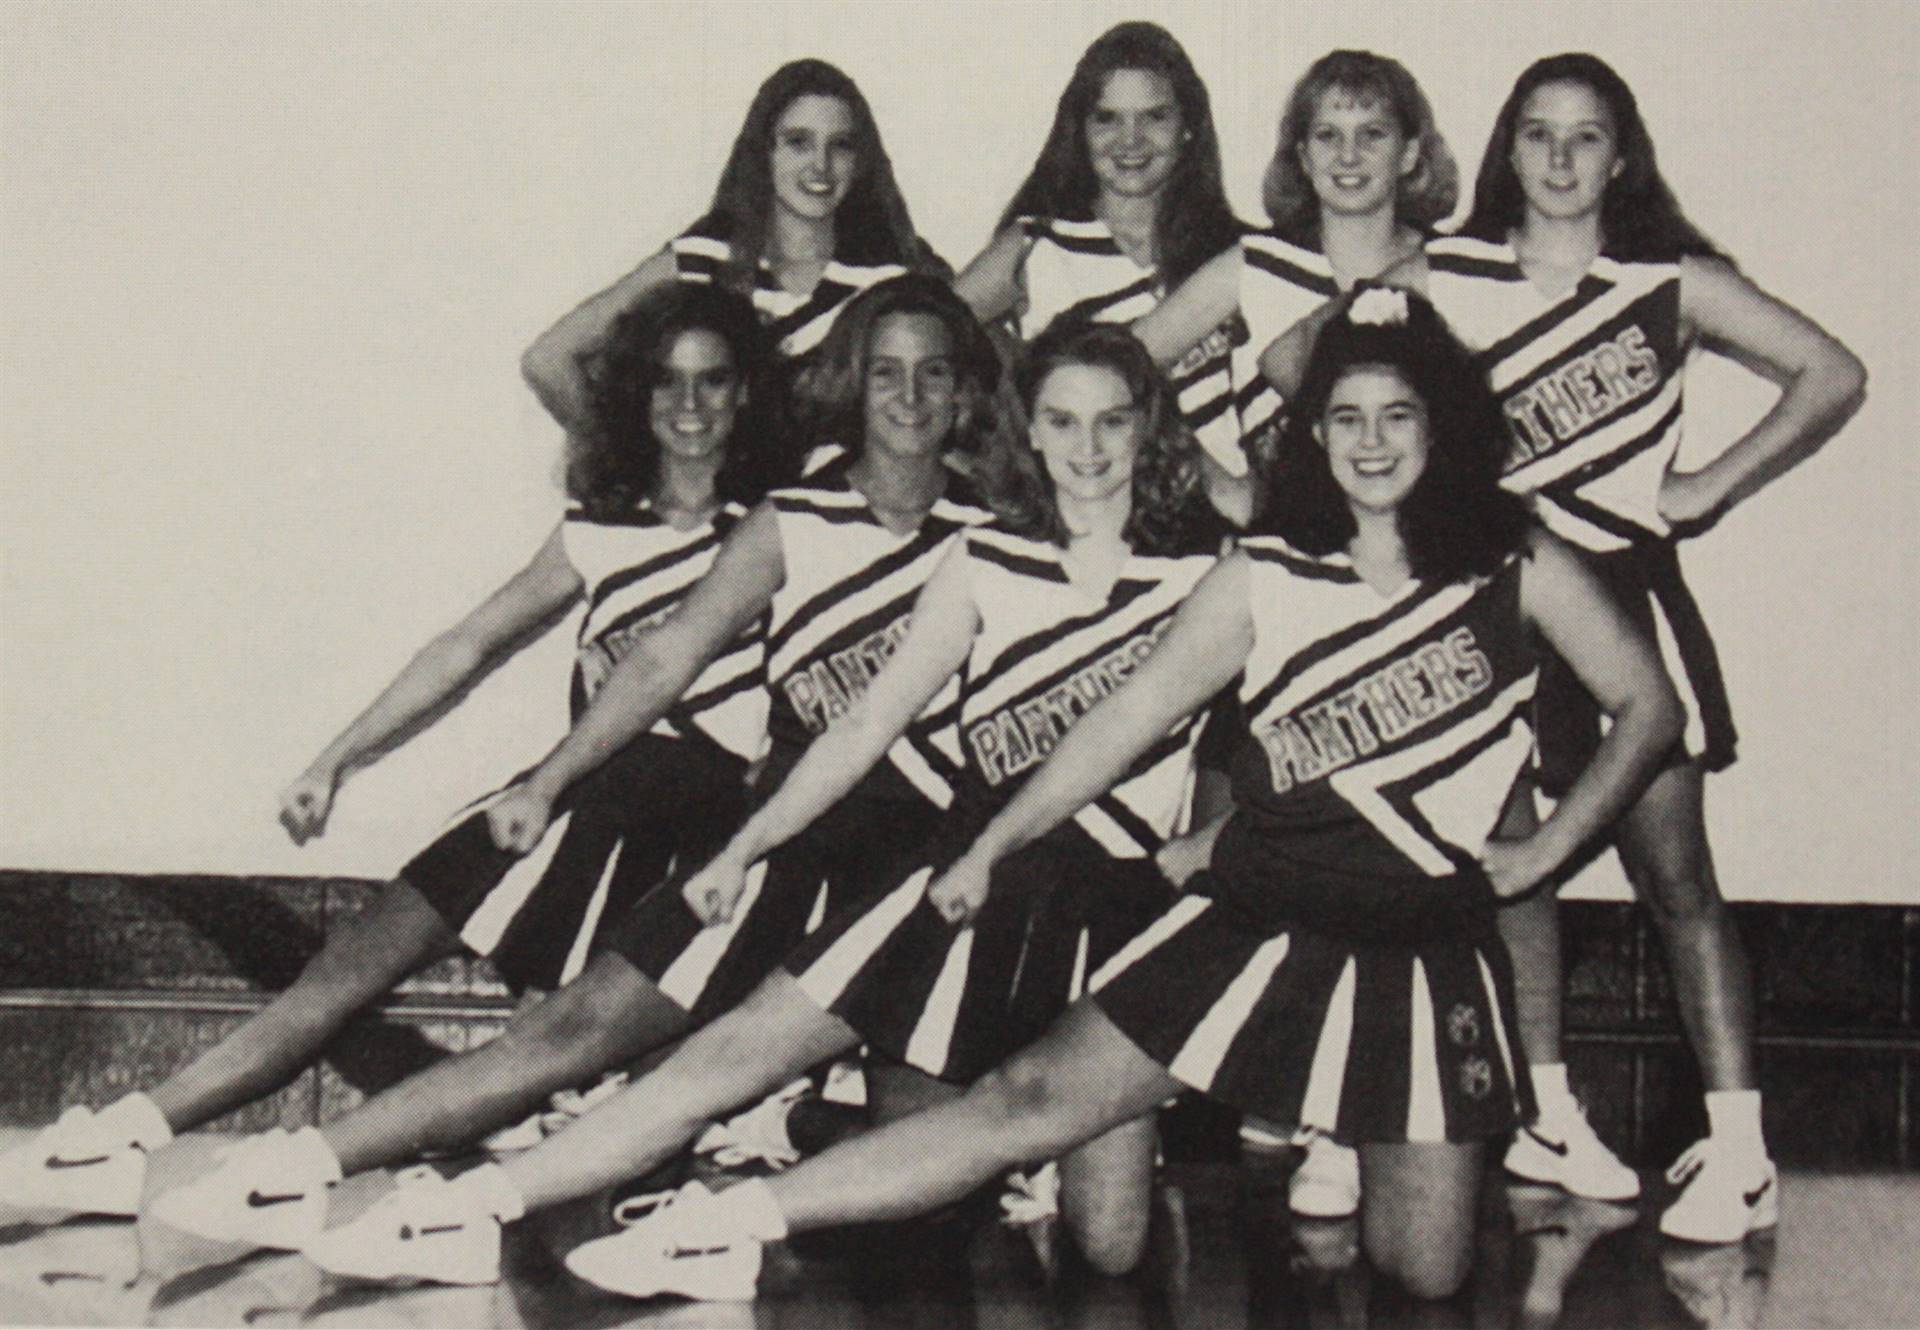 1995 Varsity Cheerleaders